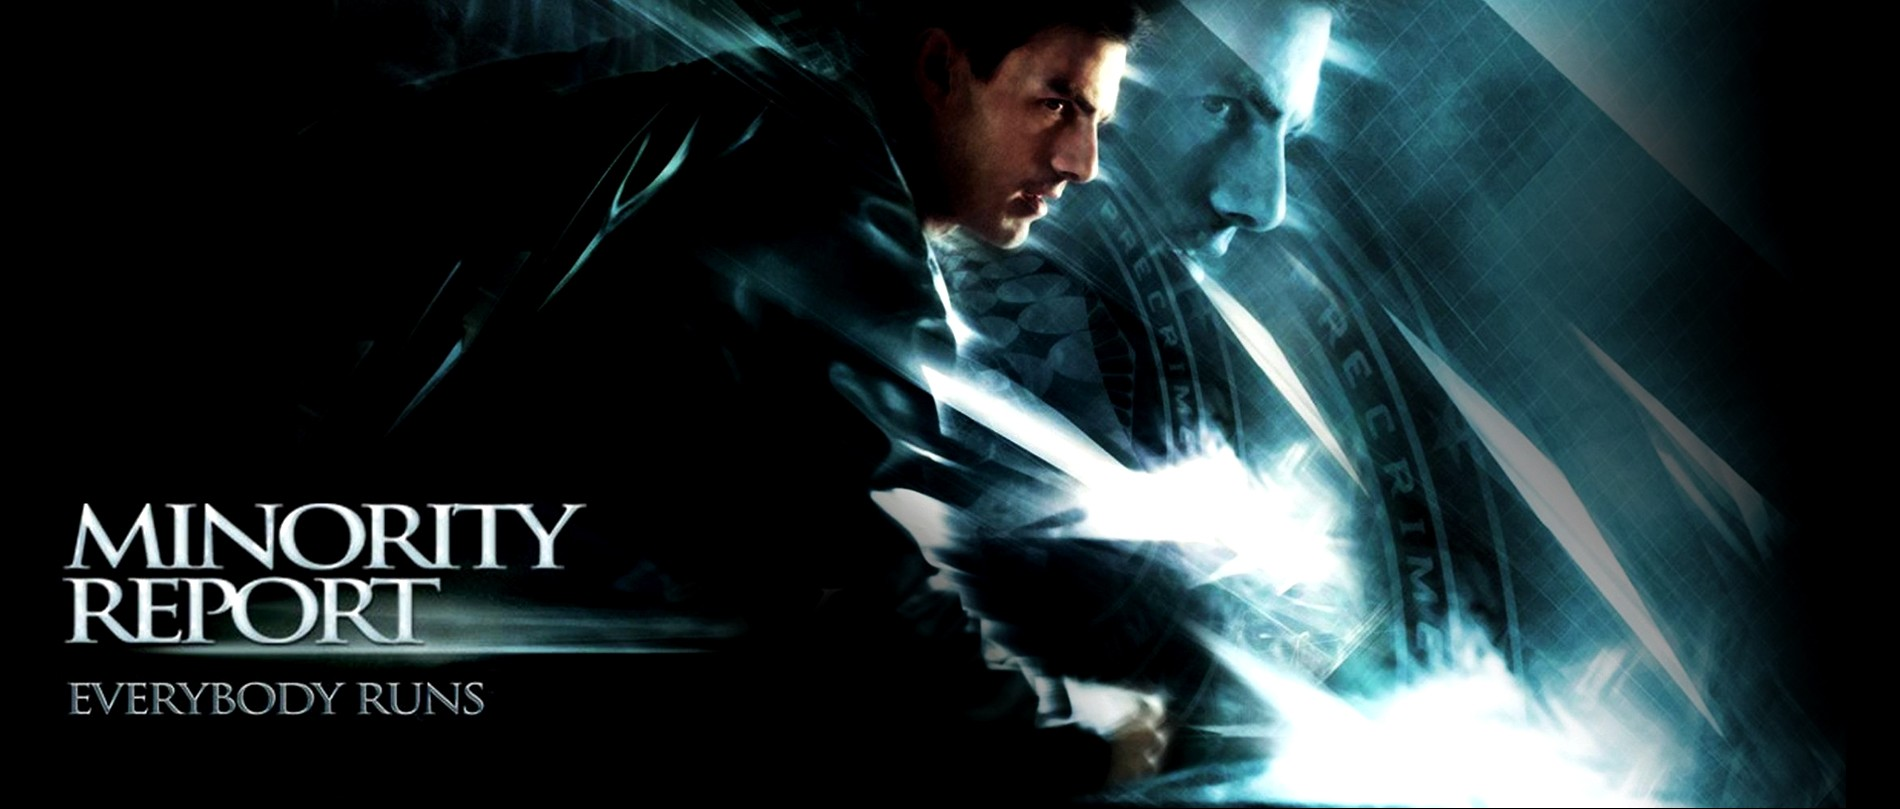 Minority Report Backgrounds, Compatible - PC, Mobile, Gadgets| 1900x809 px